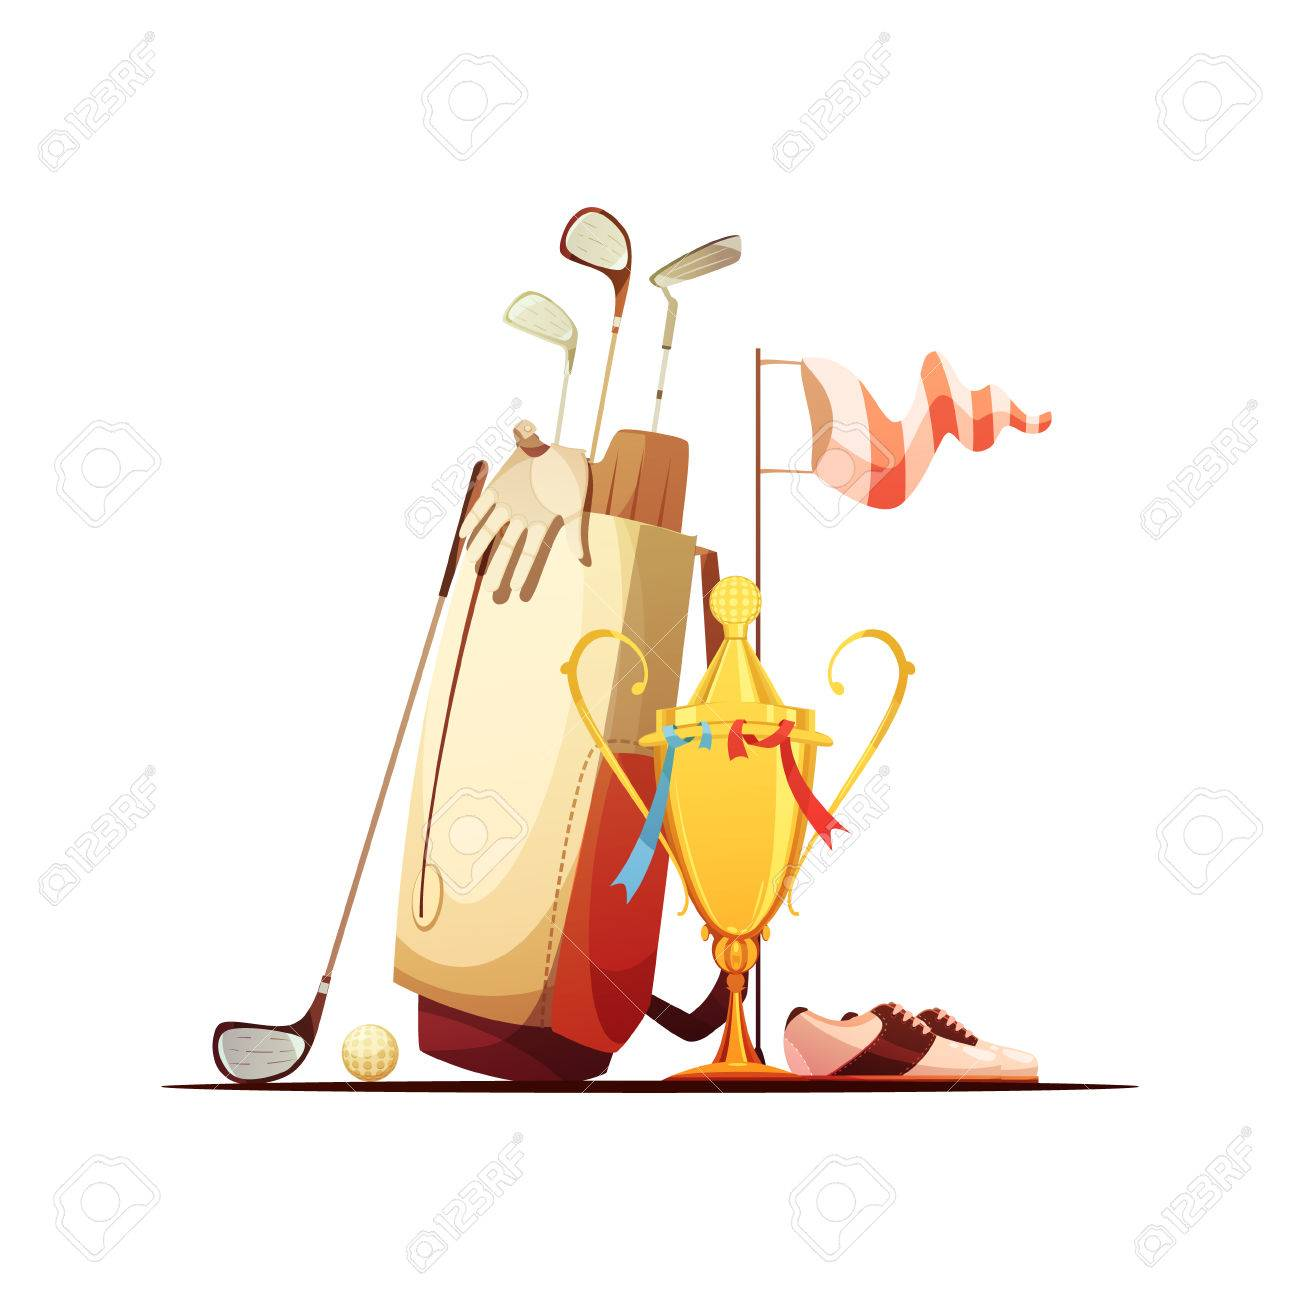 Golf Bag With Ball Clubs Shoes And Tour Championship Winner Trophy Royalty Free Cliparts Vectors And Stock Illustration Image 64468335